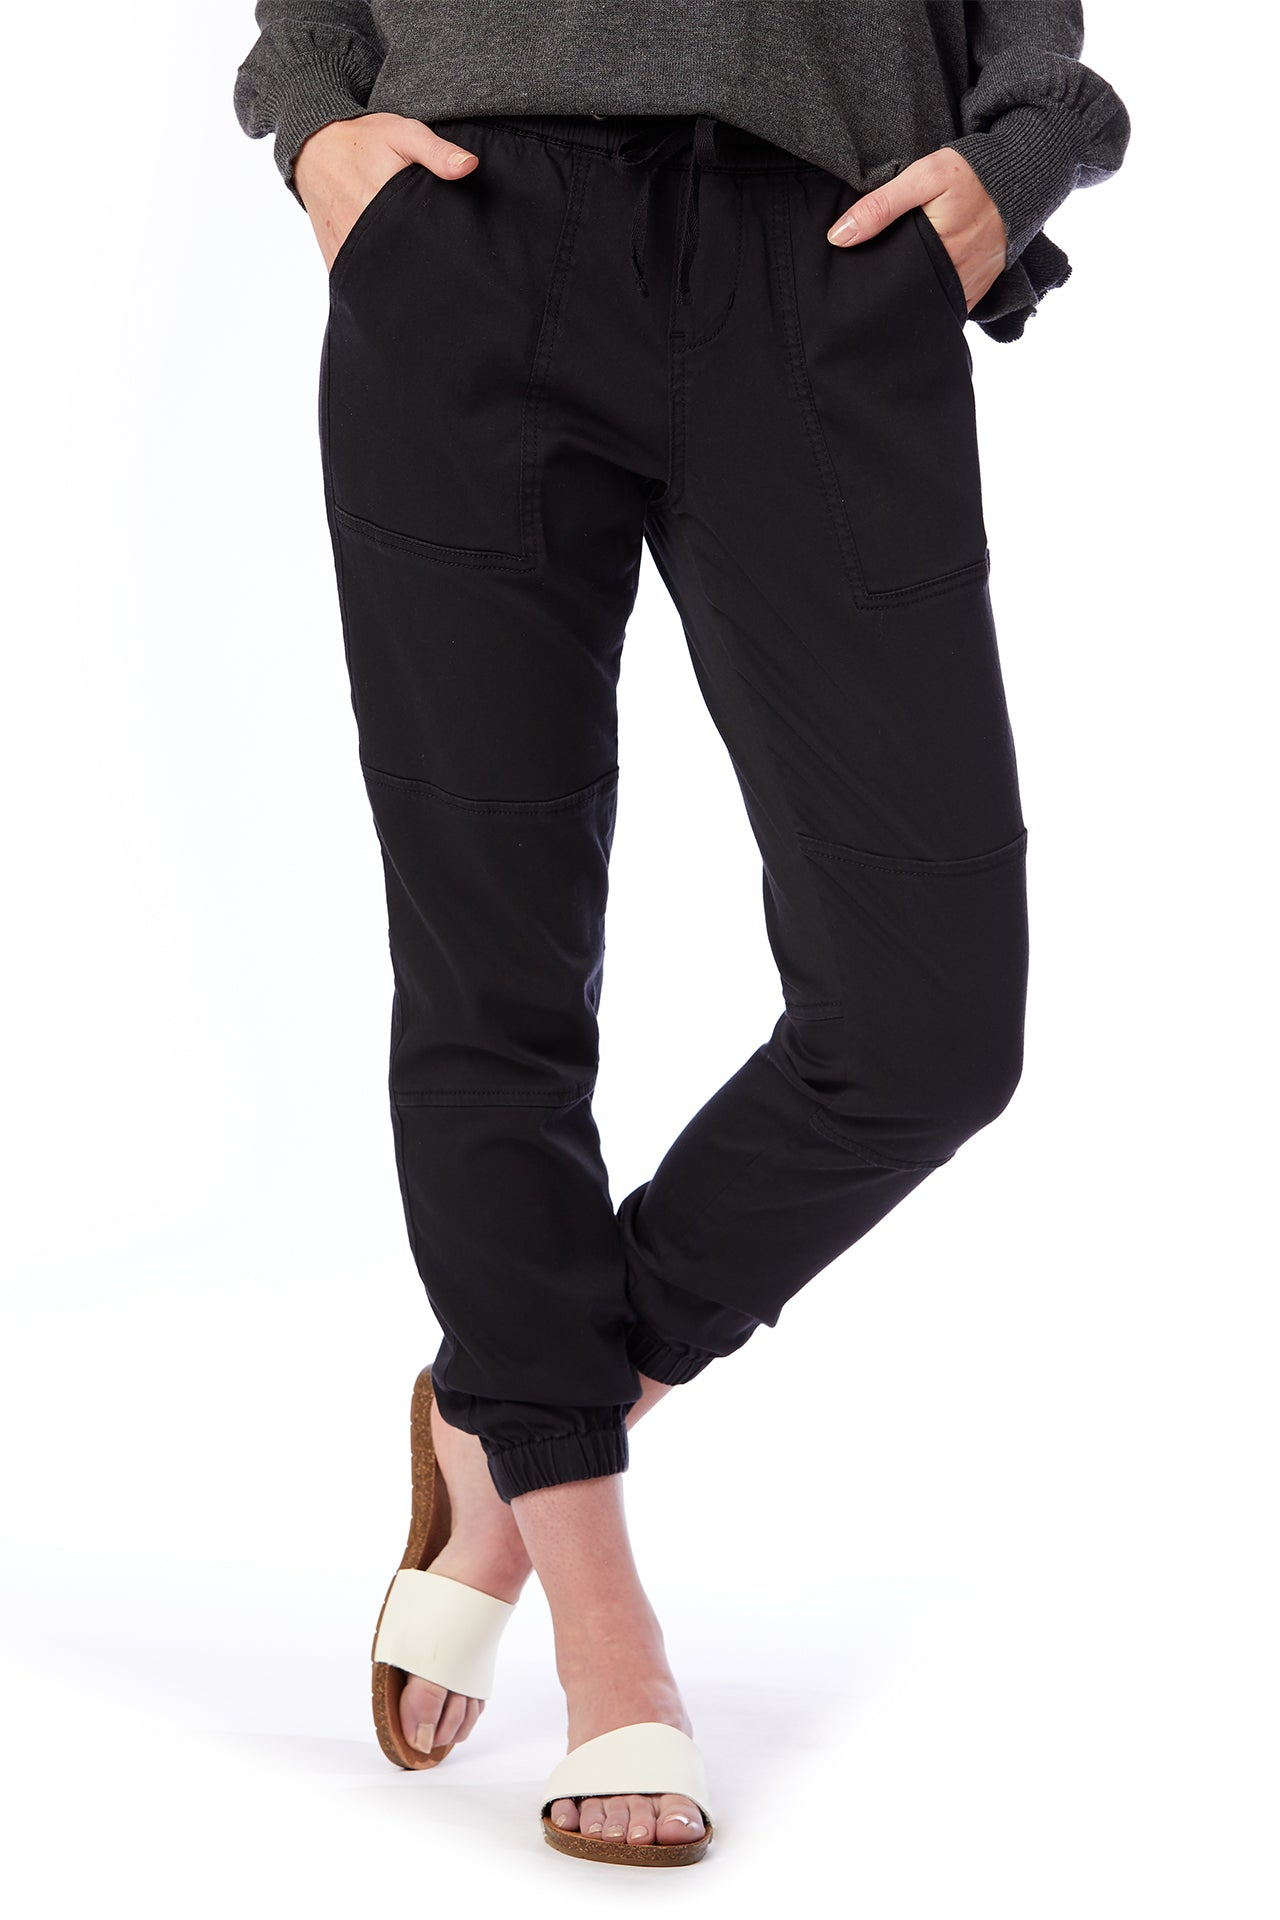 demerey sateen jogger pant (reg and plus size)